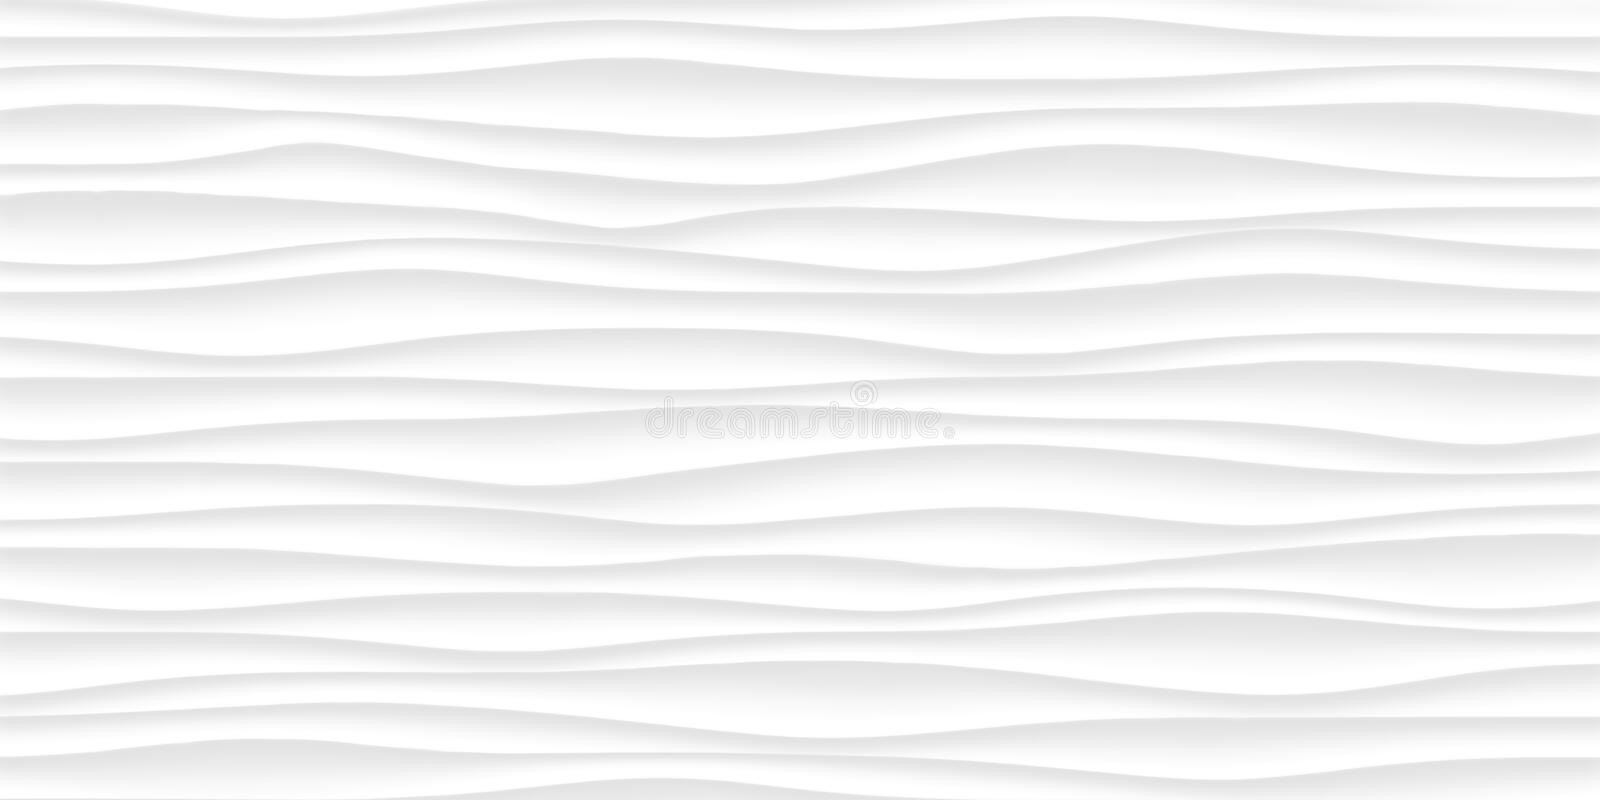 Line White texture. gray abstract pattern seamless. wave wavy na stock images